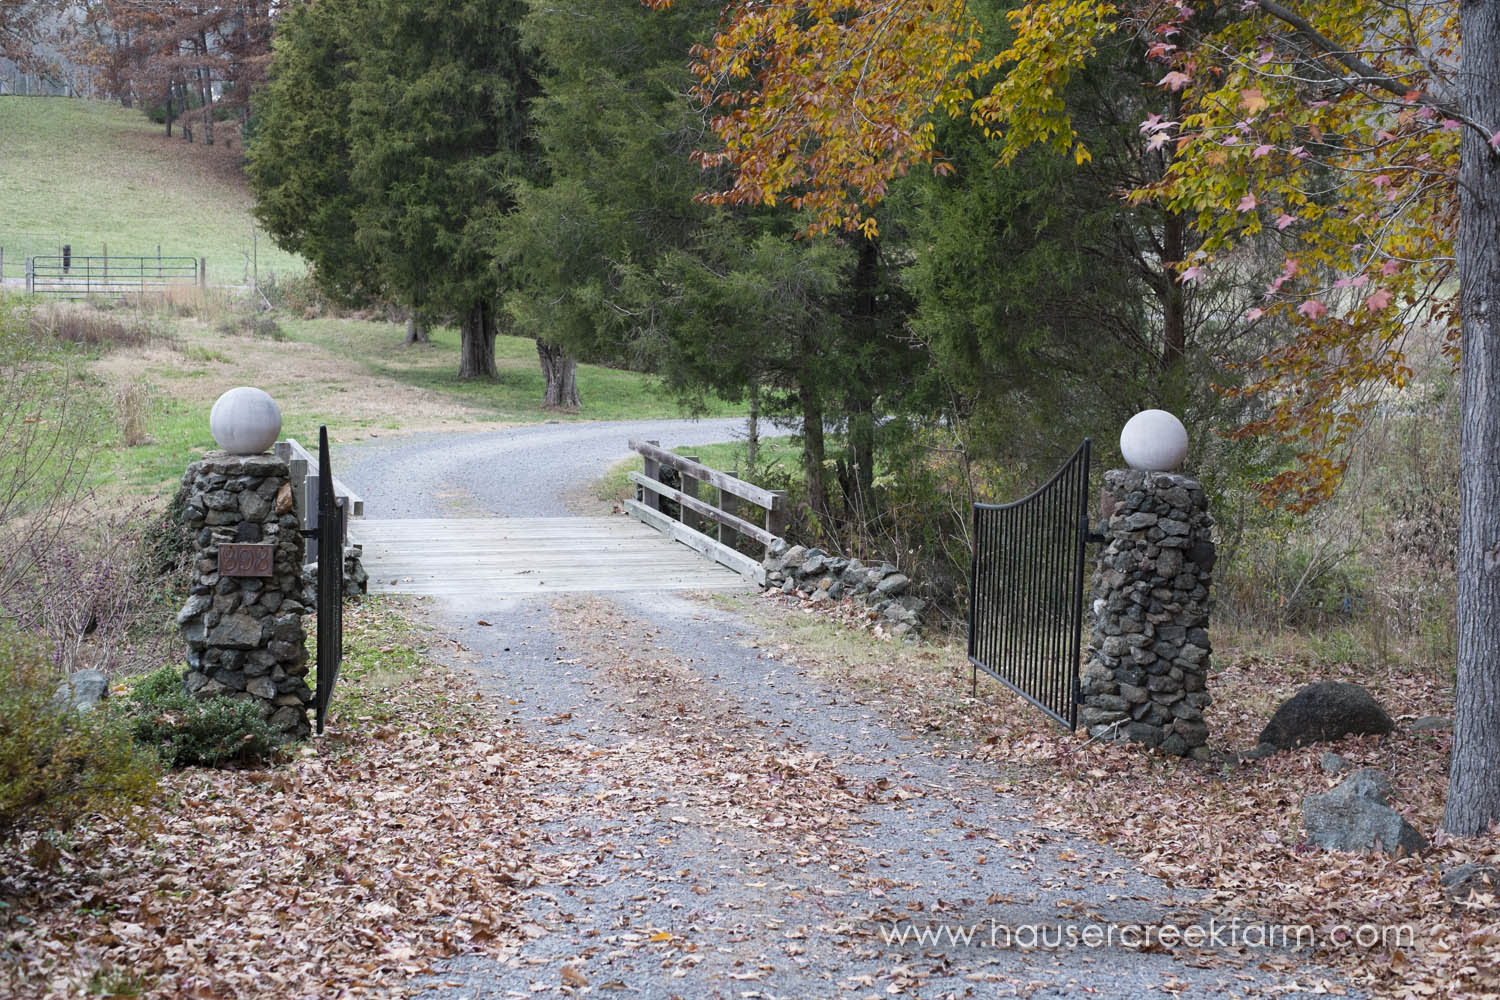 Open gate at entrance to the farm with fall leaves